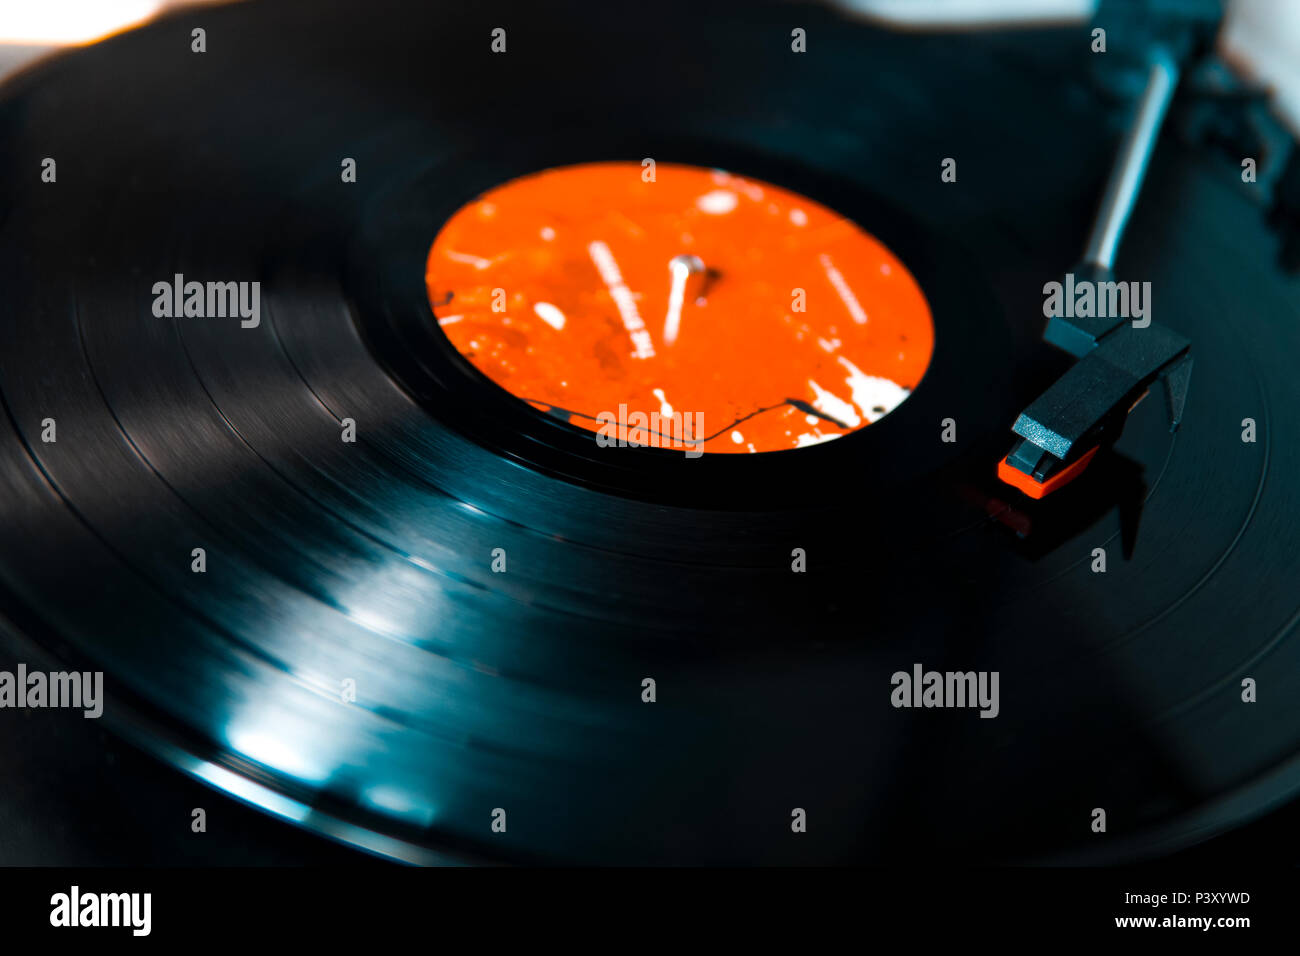 Vinyl Disc Playing on a Record Player - Stock Image